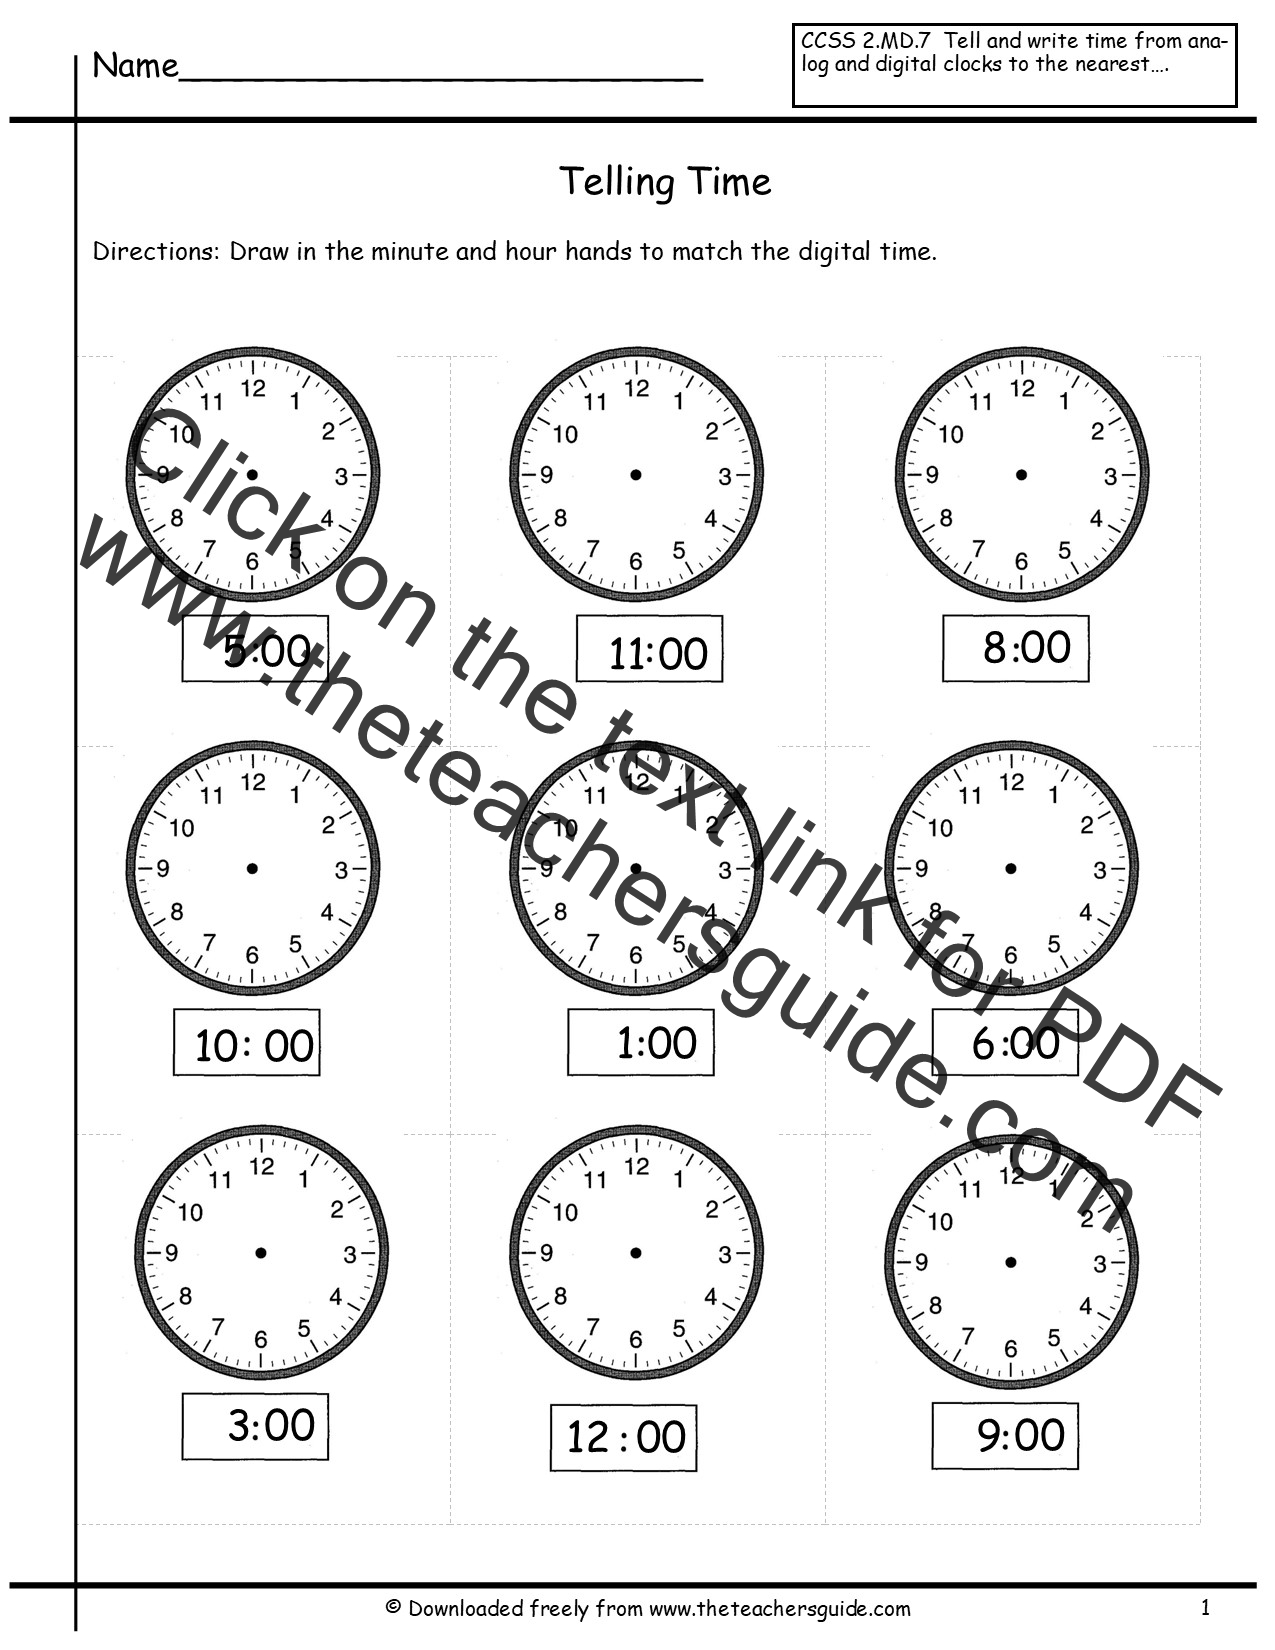 worksheet Time Worksheet telling time worksheets from the teachers guide to nearest hour worksheet